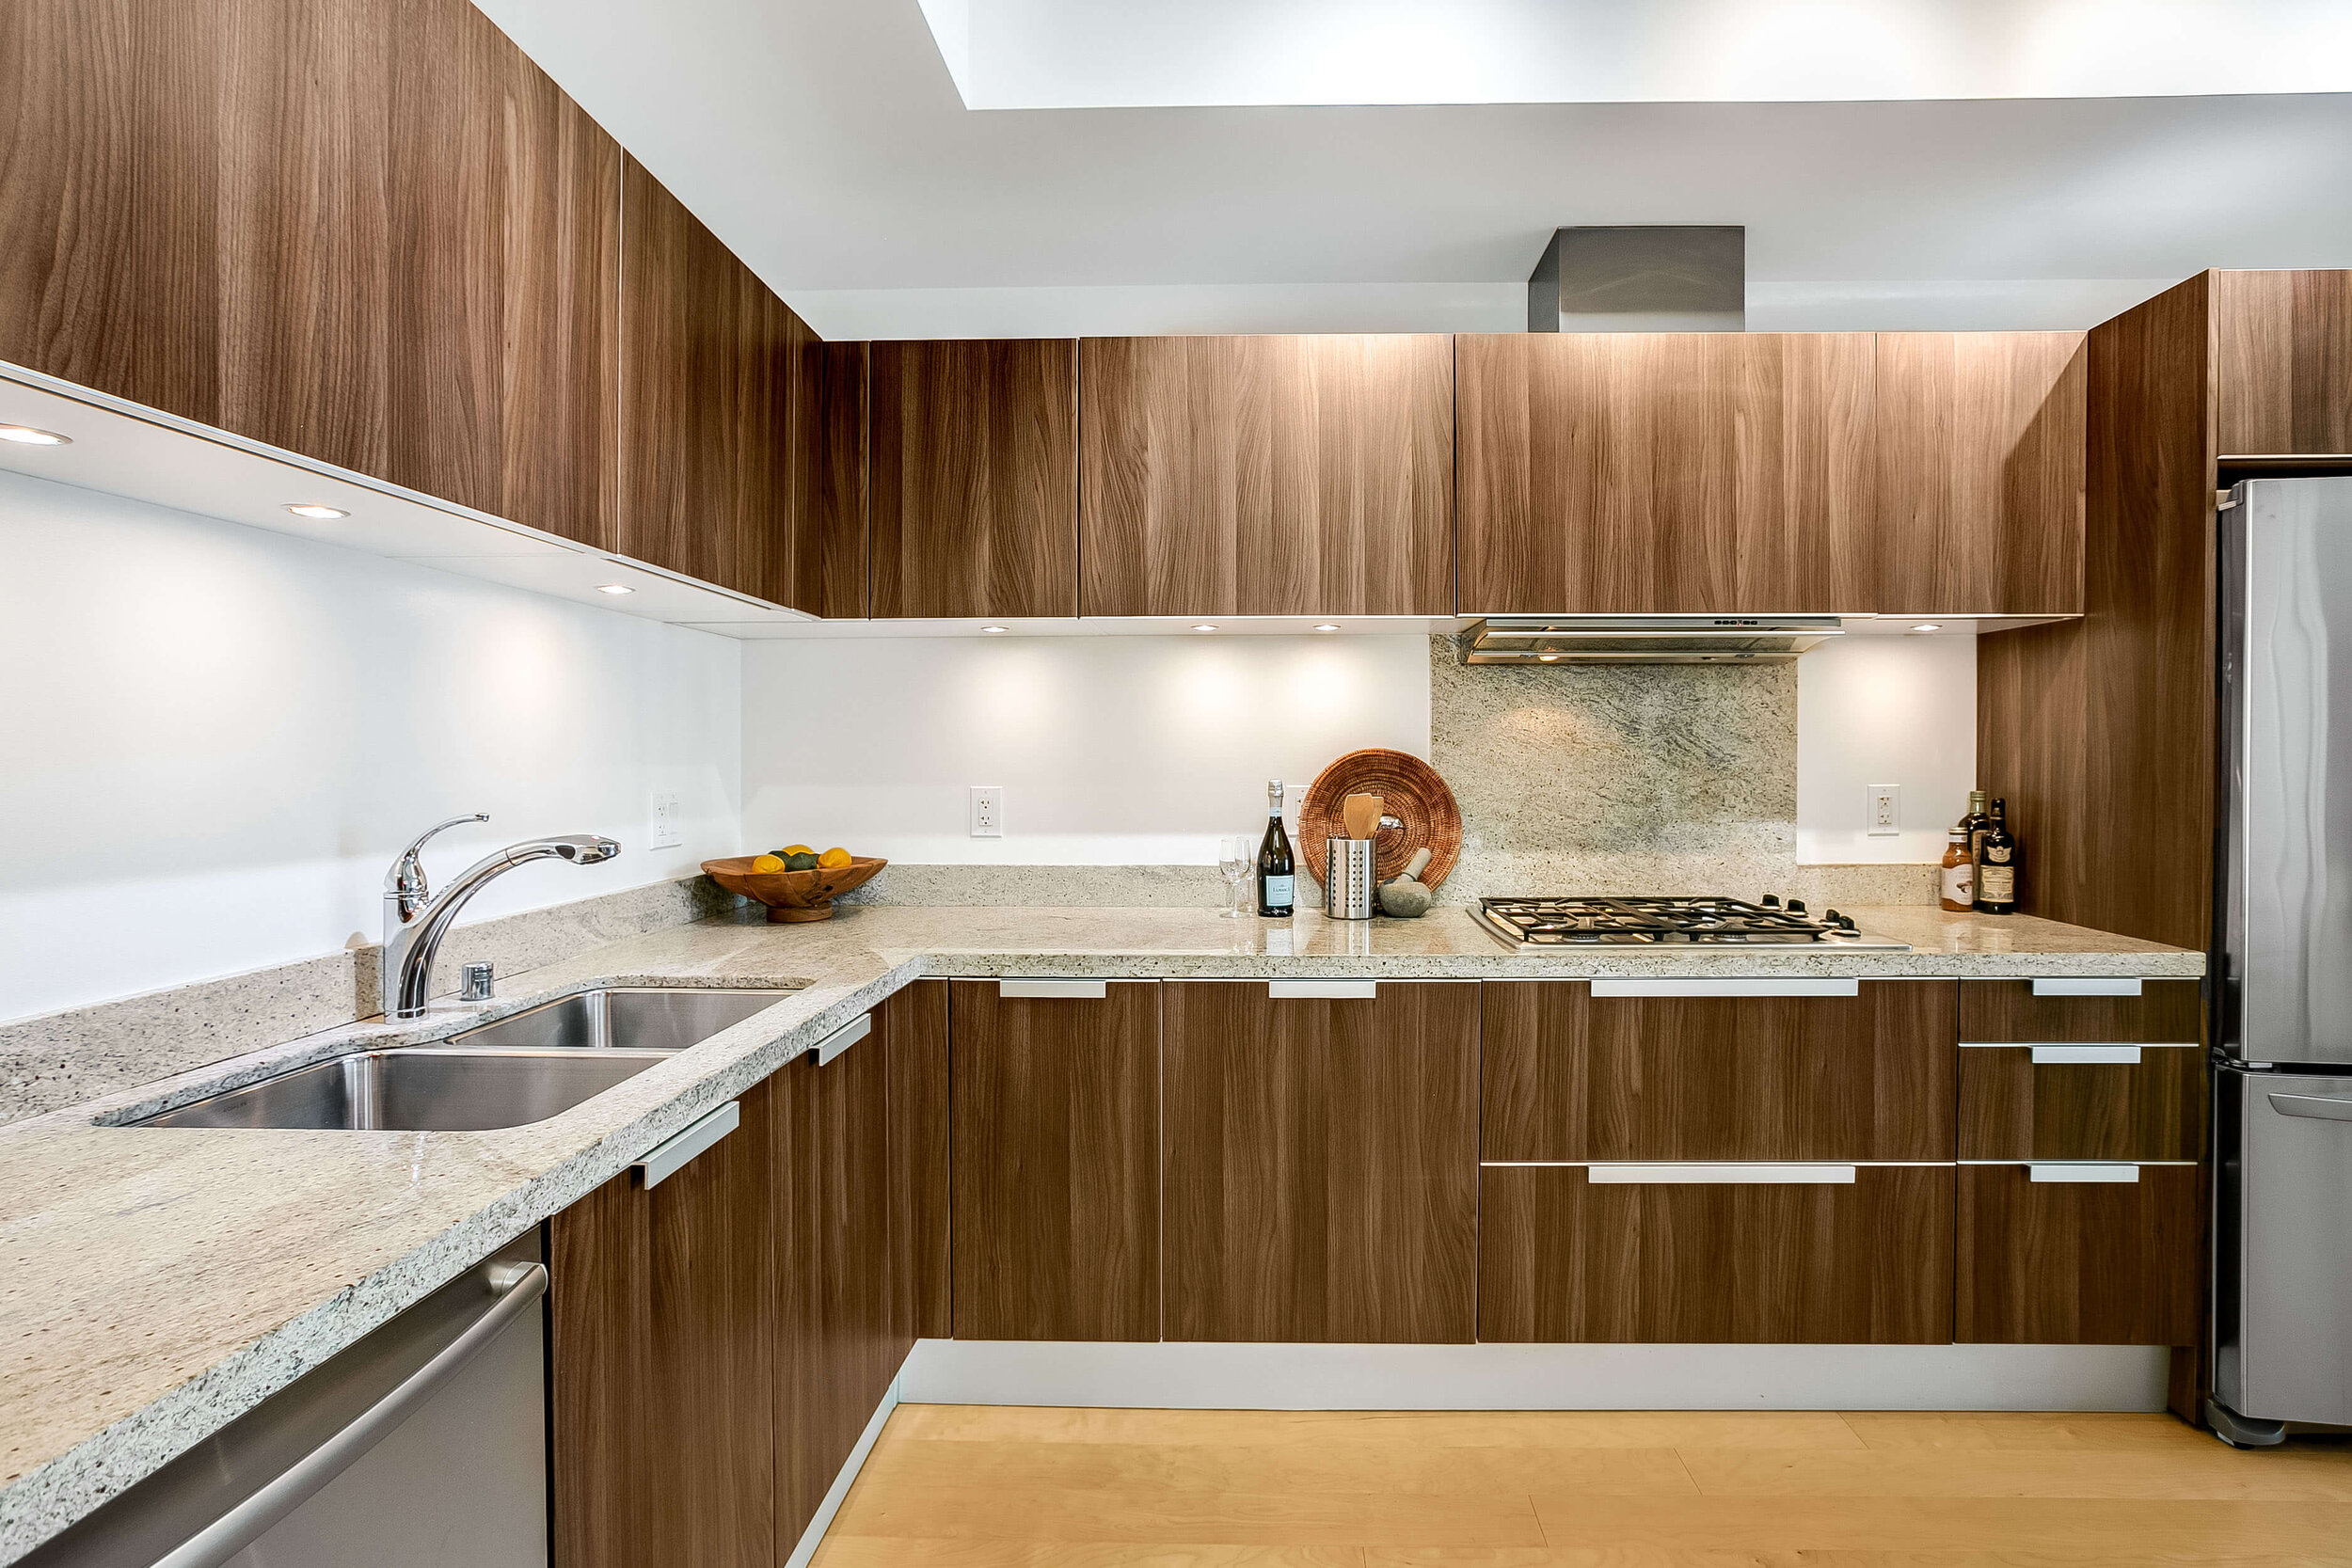 luxury-high-rise-condo-fore-sale-downtown-seattle.jpg